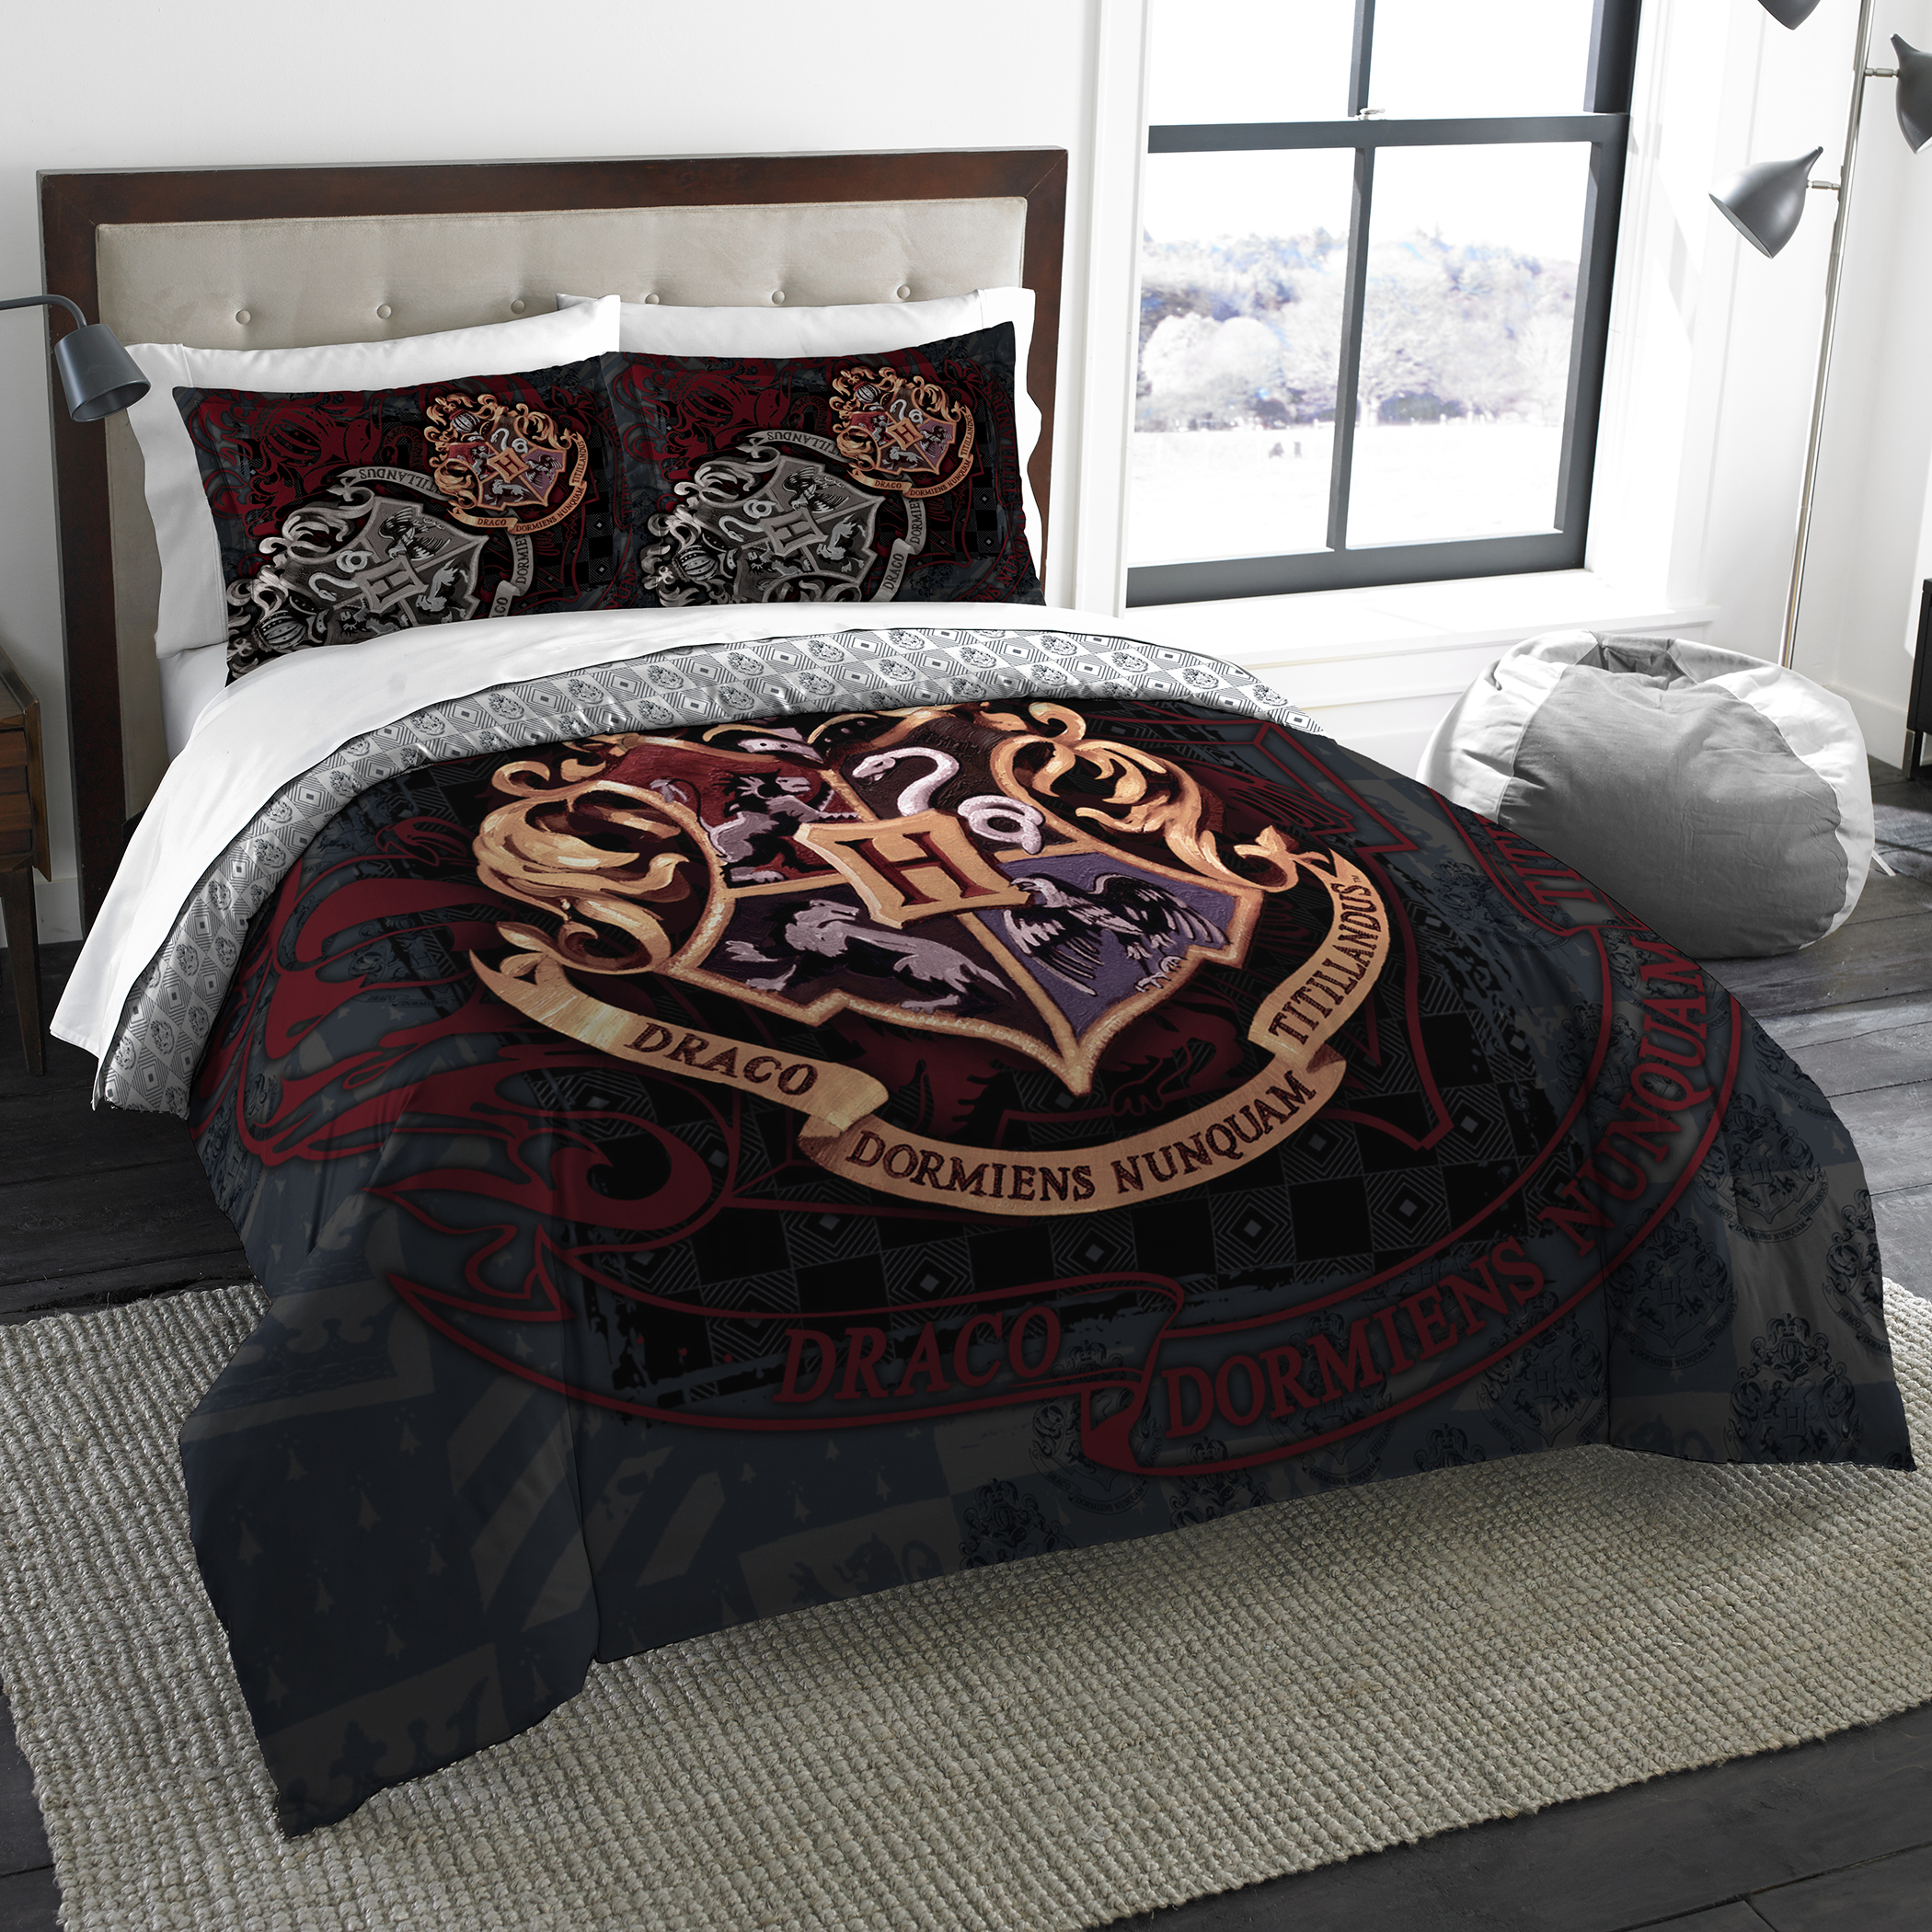 Harry Potter School Motto Twin/Full Bedding Comforter Set - Comes with Comforter and 2 Shams